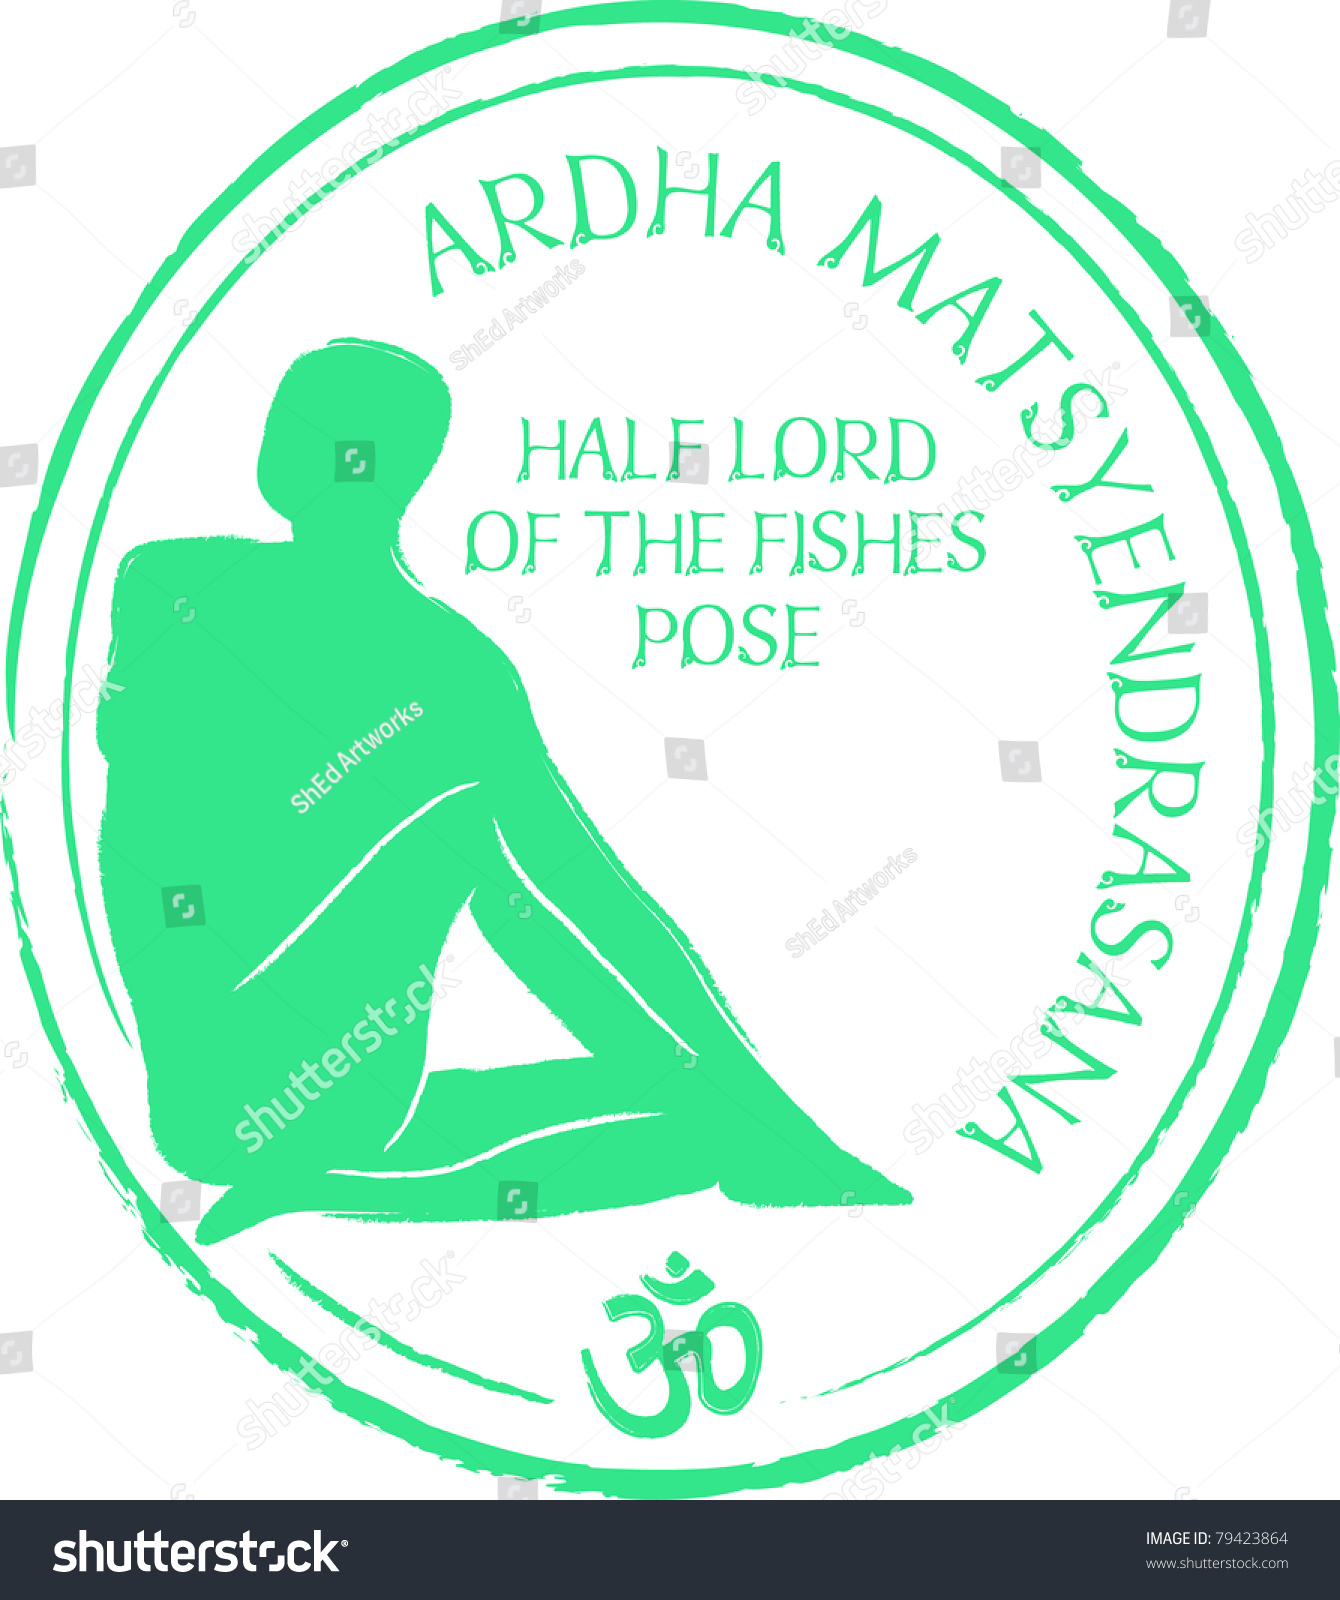 Retro ardha matsyendrasana yoga half lord of the fishes for Half lord of the fishes